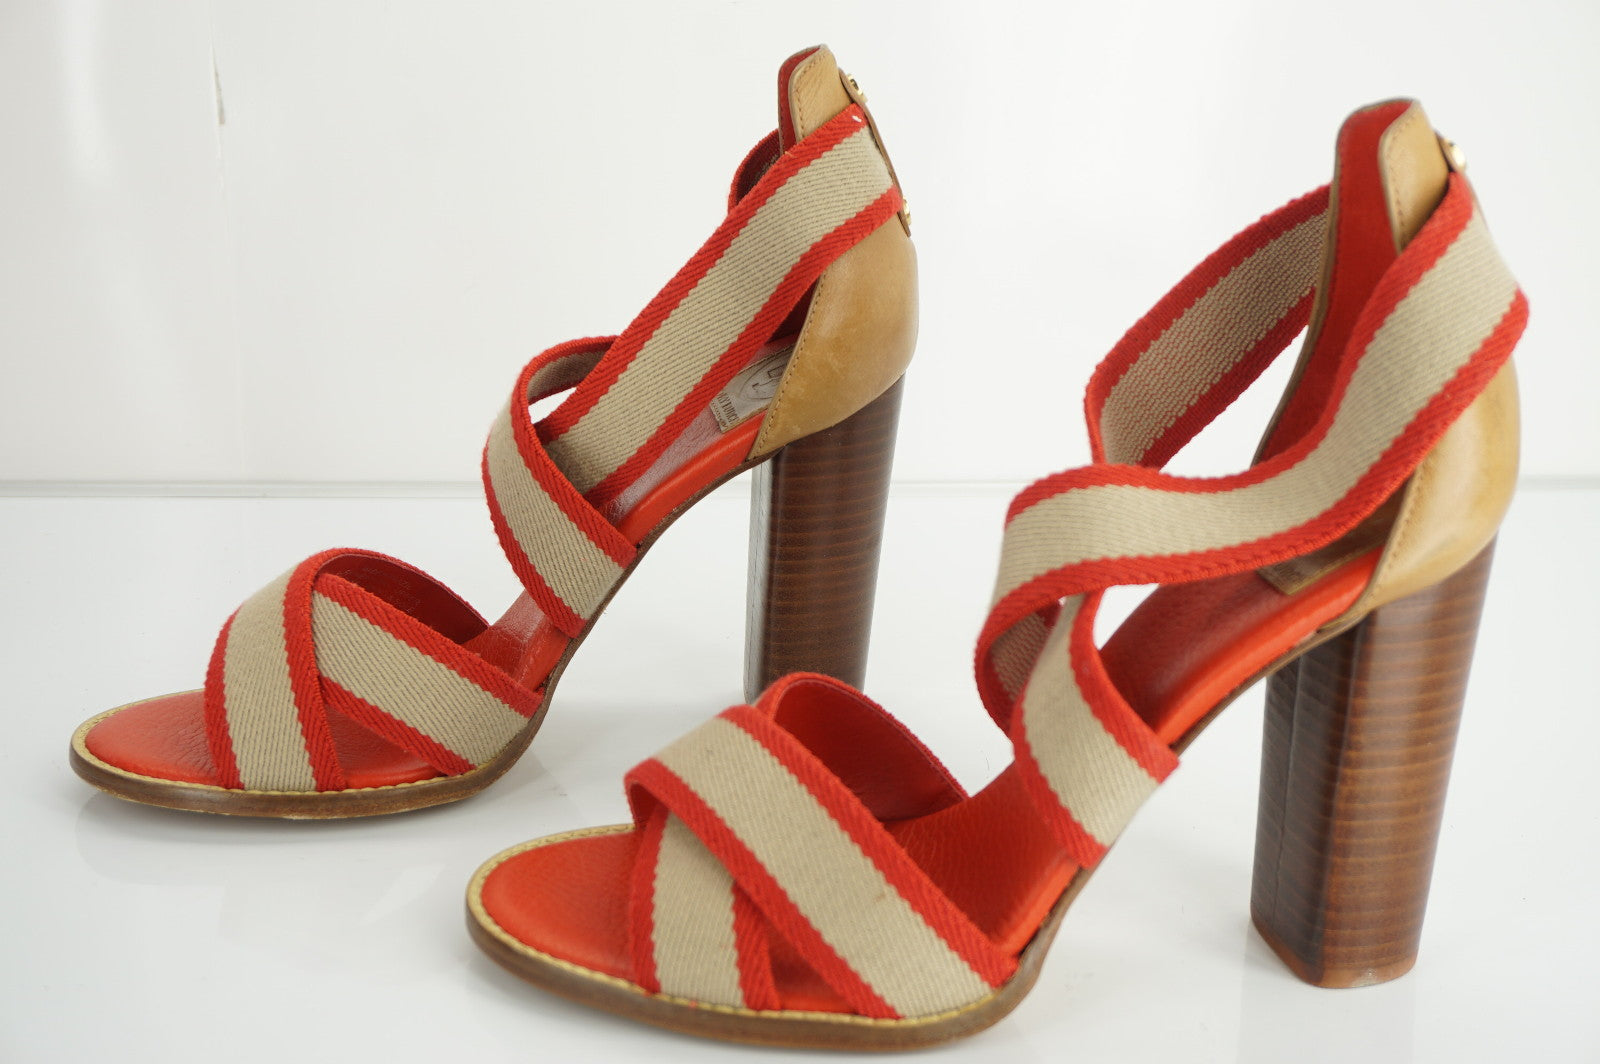 Tory Burch Laurie Red Tan Striped Canvas High Heel Ankle Sandals SZ 9.5 New $285